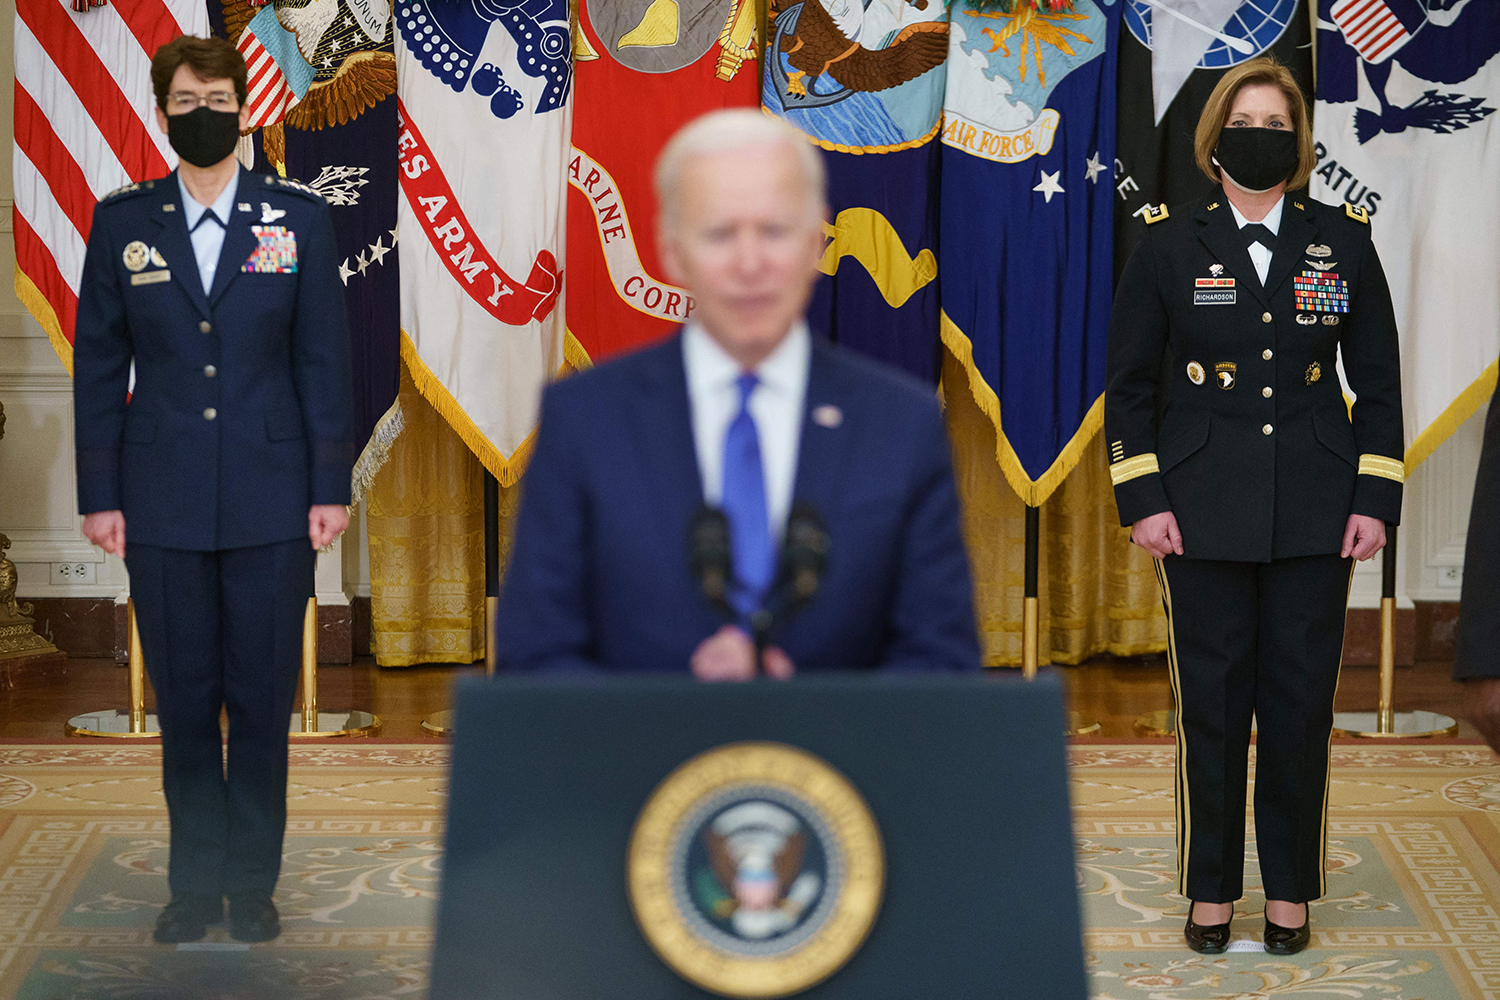 President Joe Biden and Gen. Jacqueline Van Ovost and Lt. Gen. Laura Richardson during their nomination to key military positions at the White House.